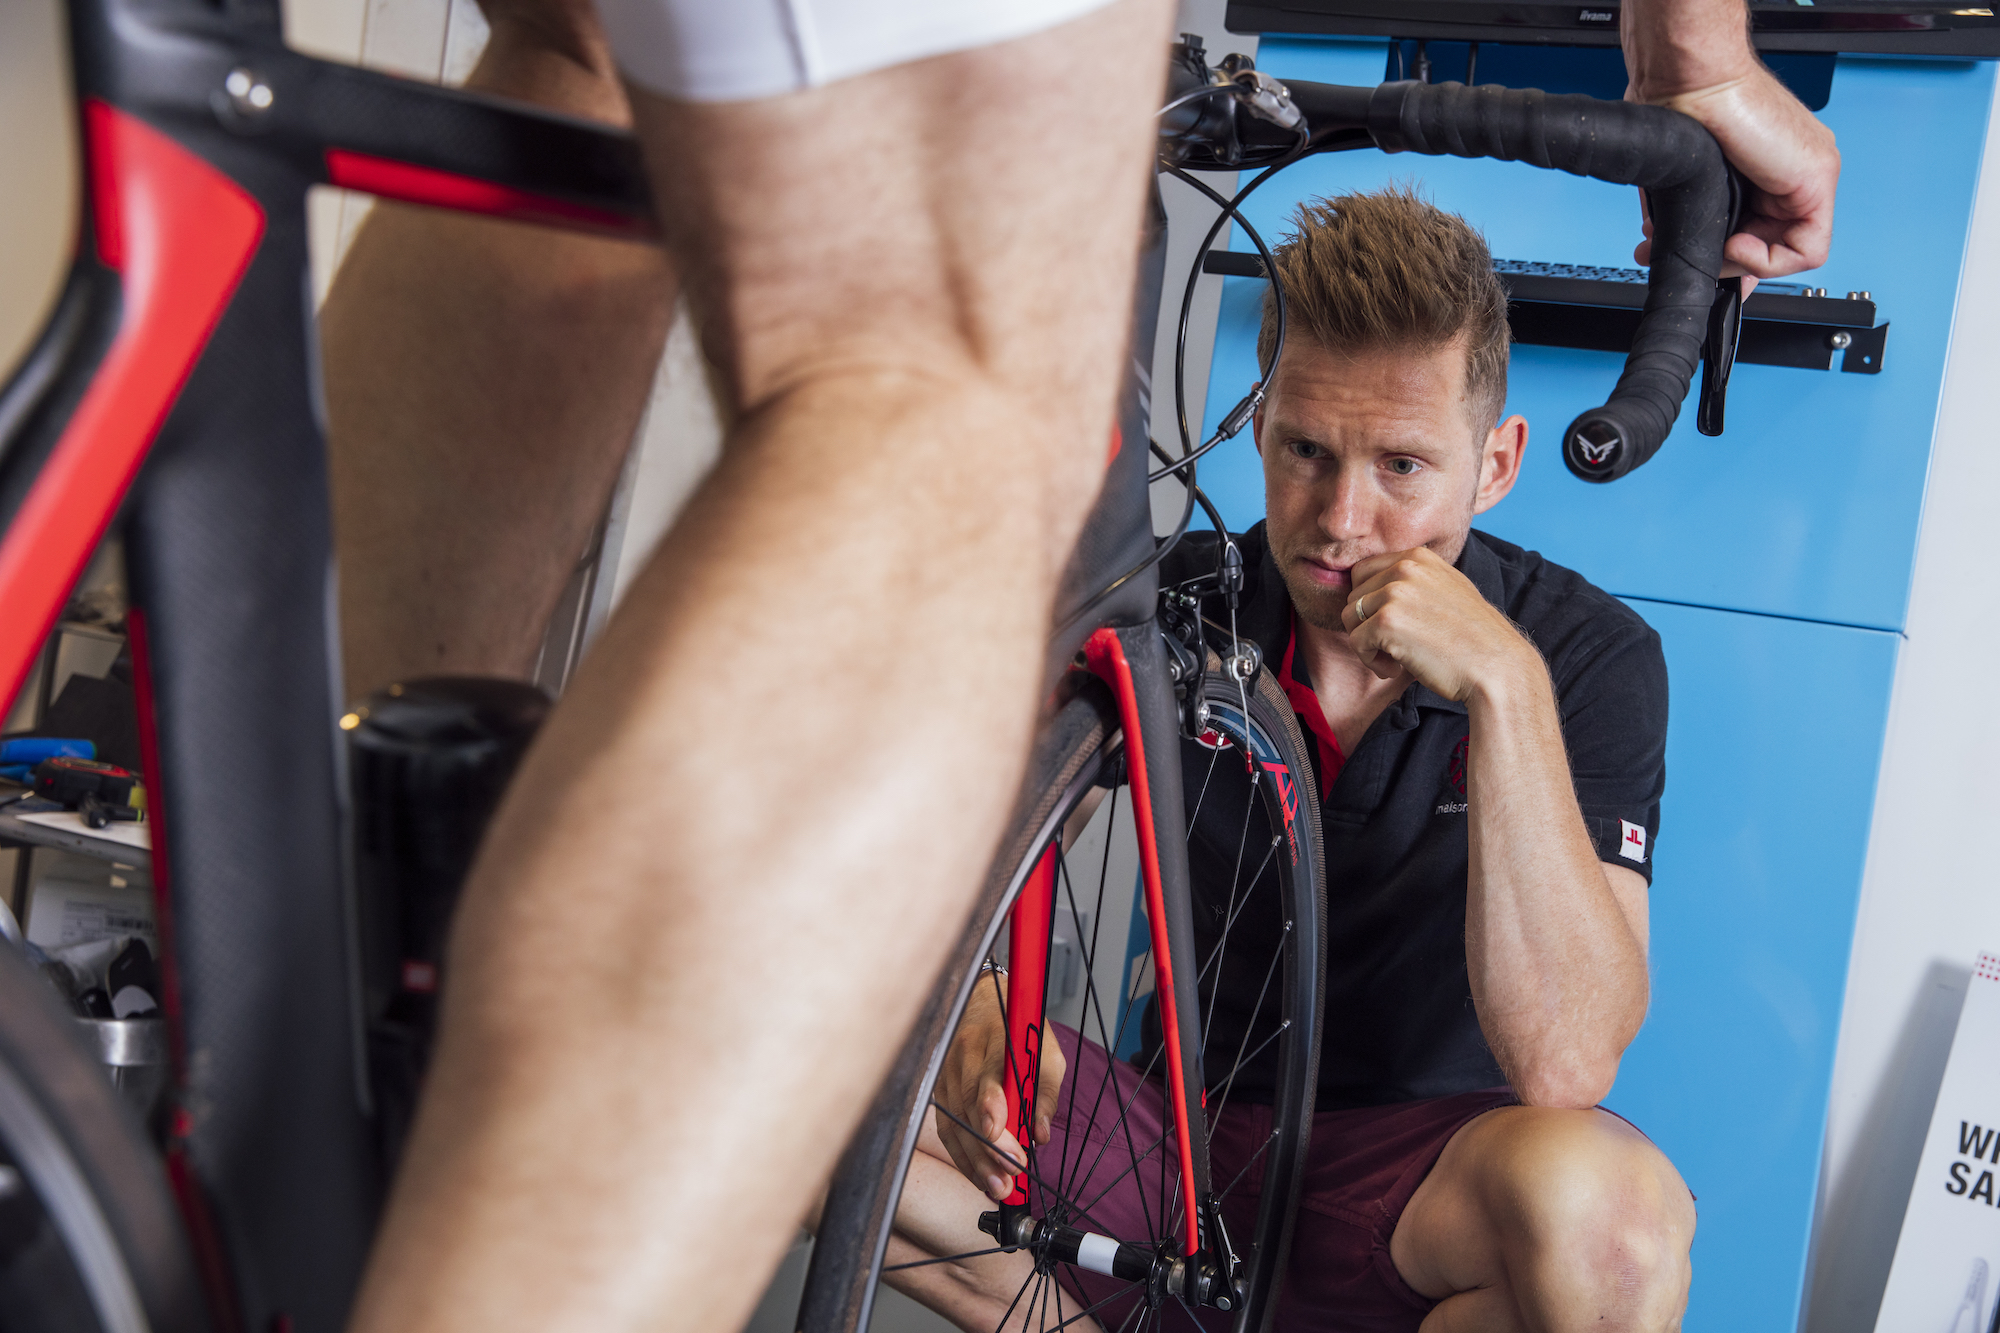 Total rush bike fit